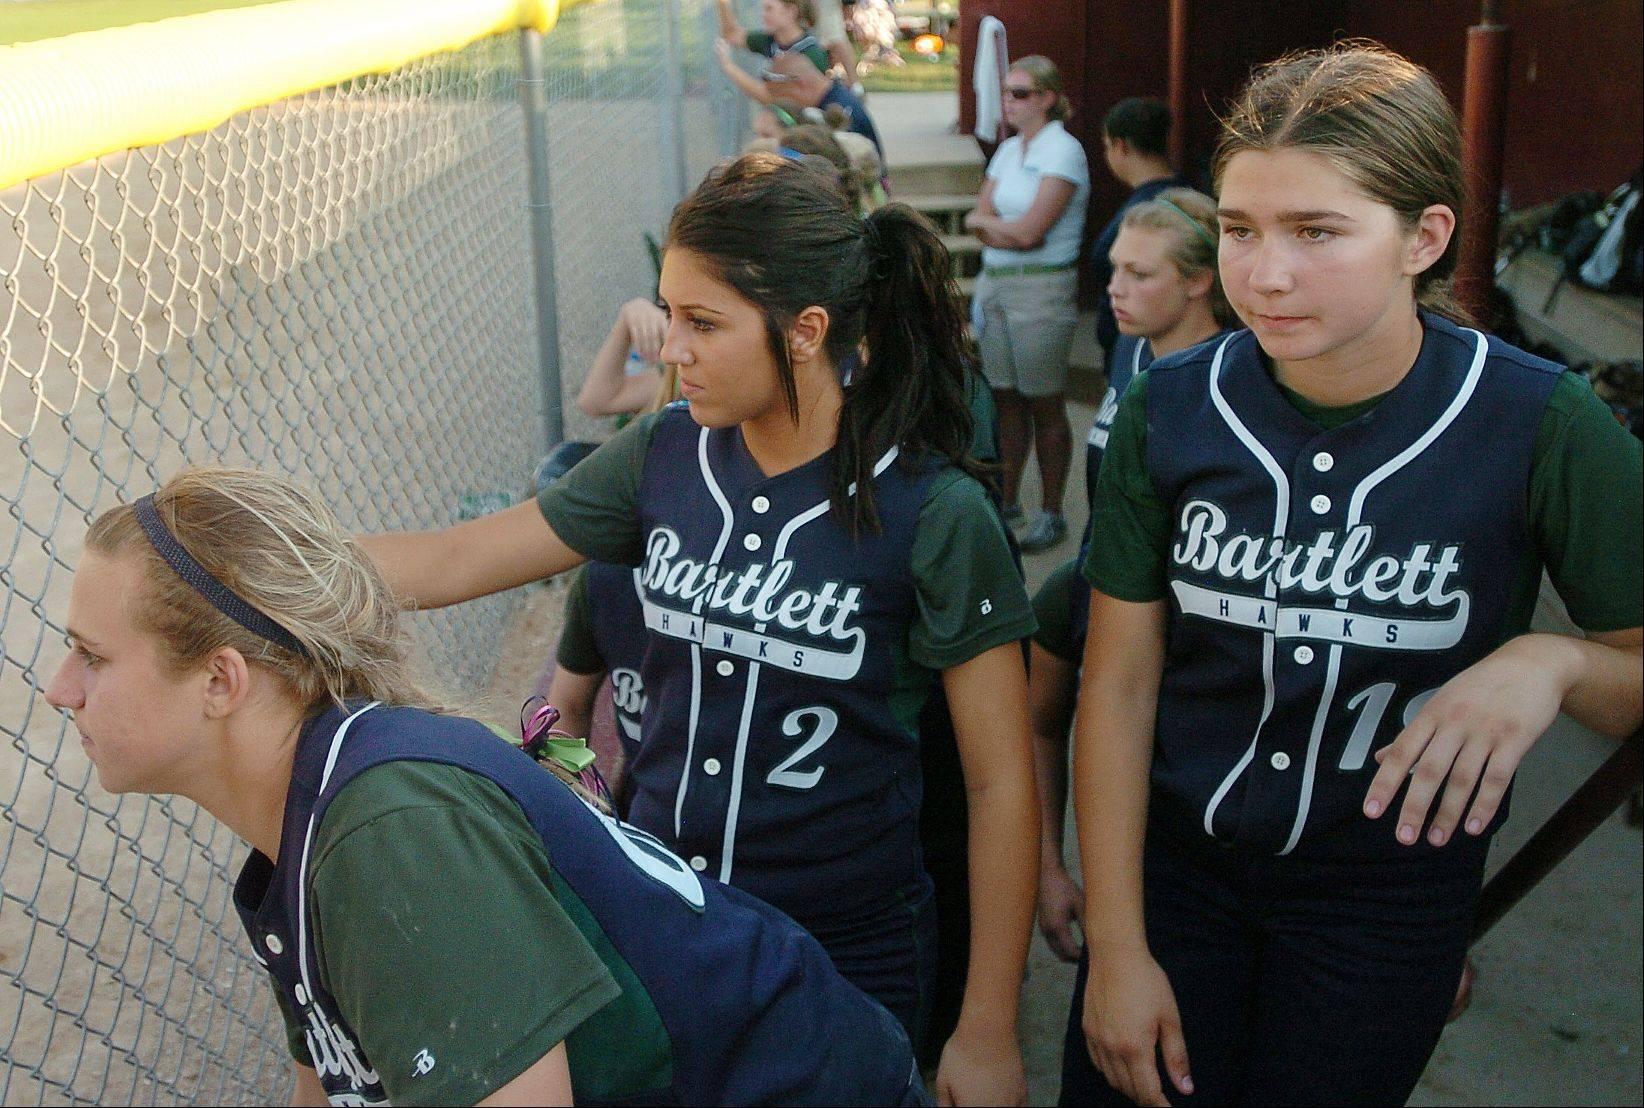 A glum Bartlett team watches the final out of their Class 4A state softball championship loss to Marist.